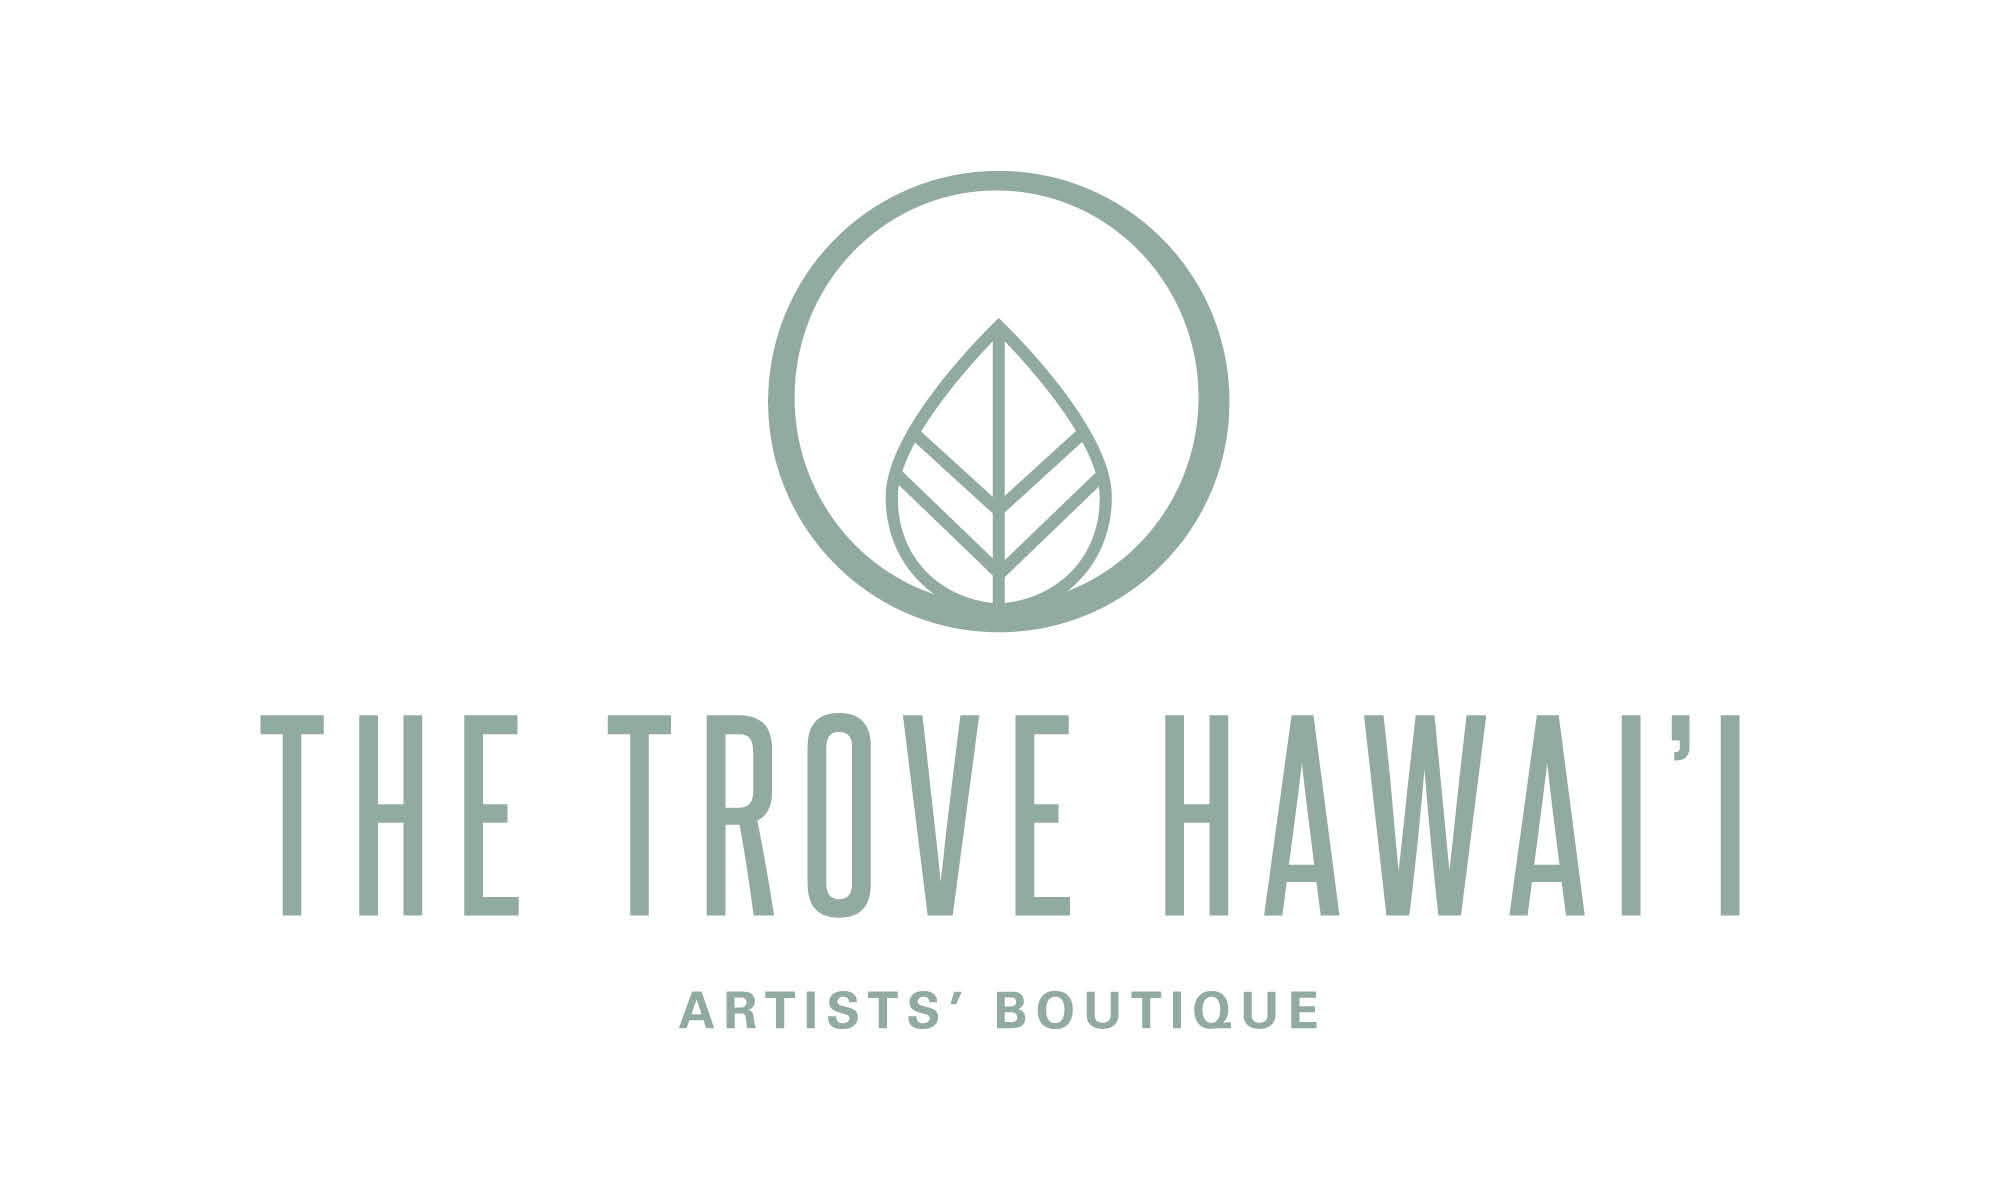 The Trove Hawai'i LLC